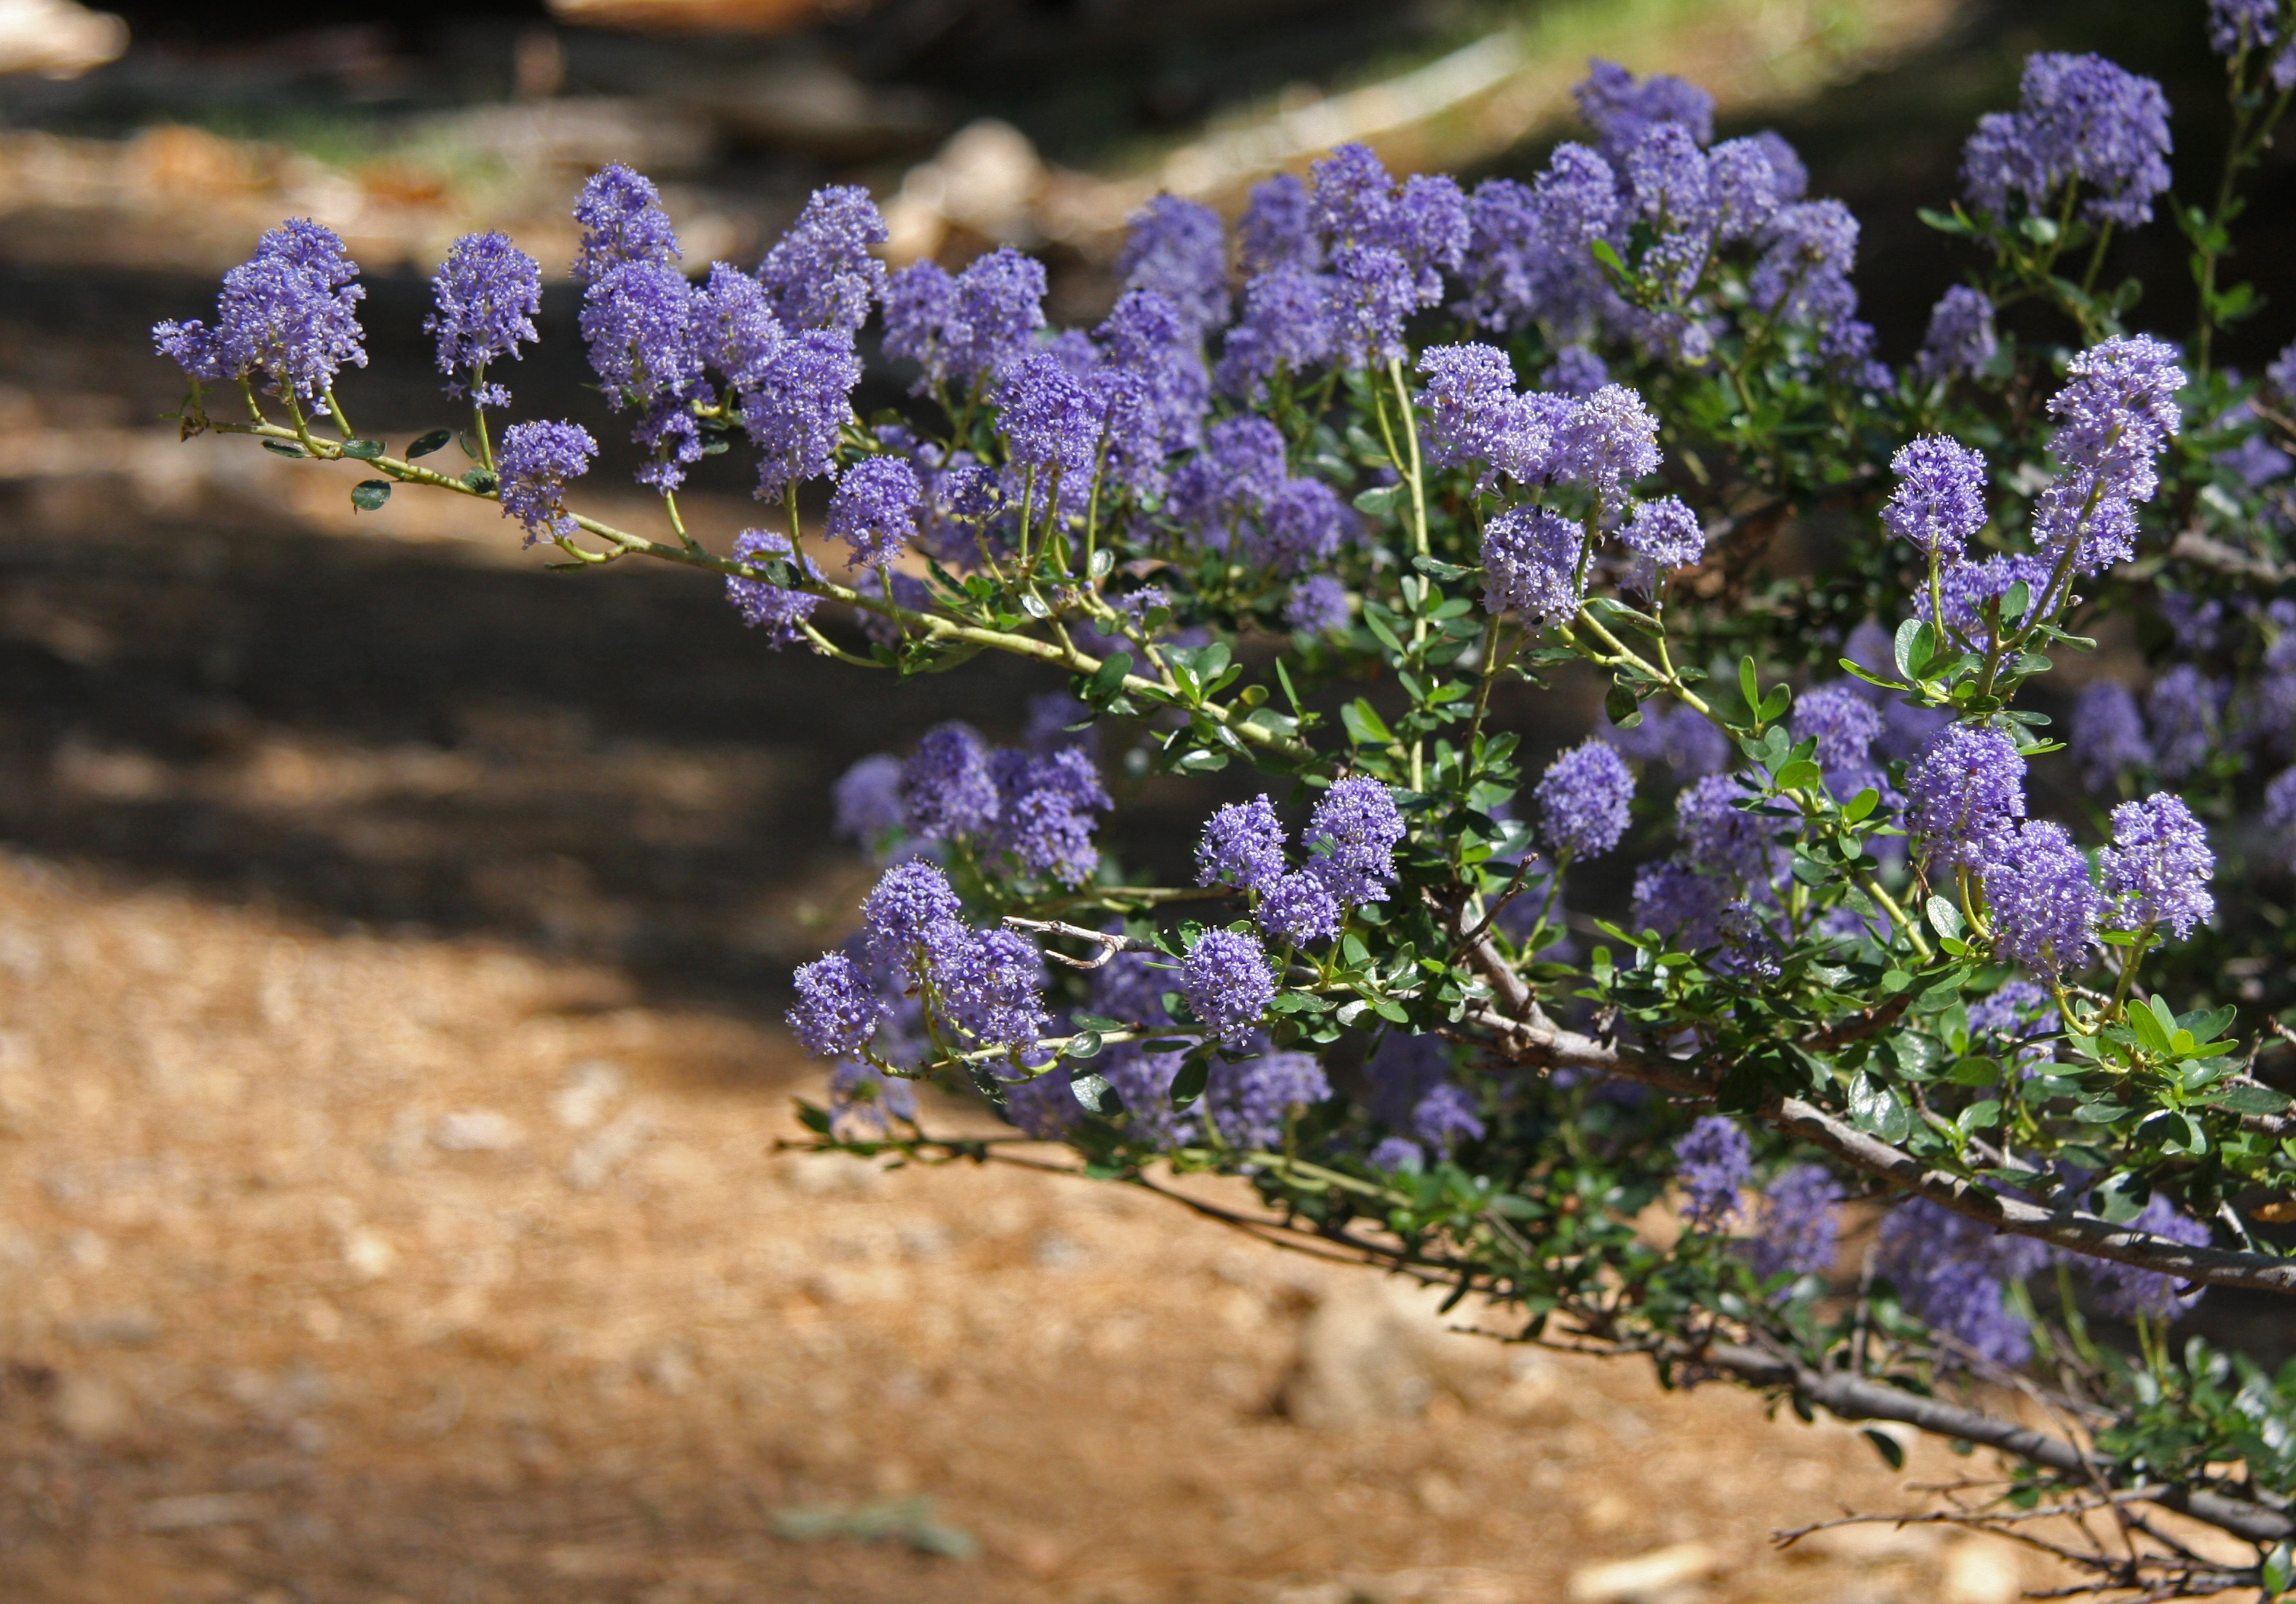 California gardening works best with native plants